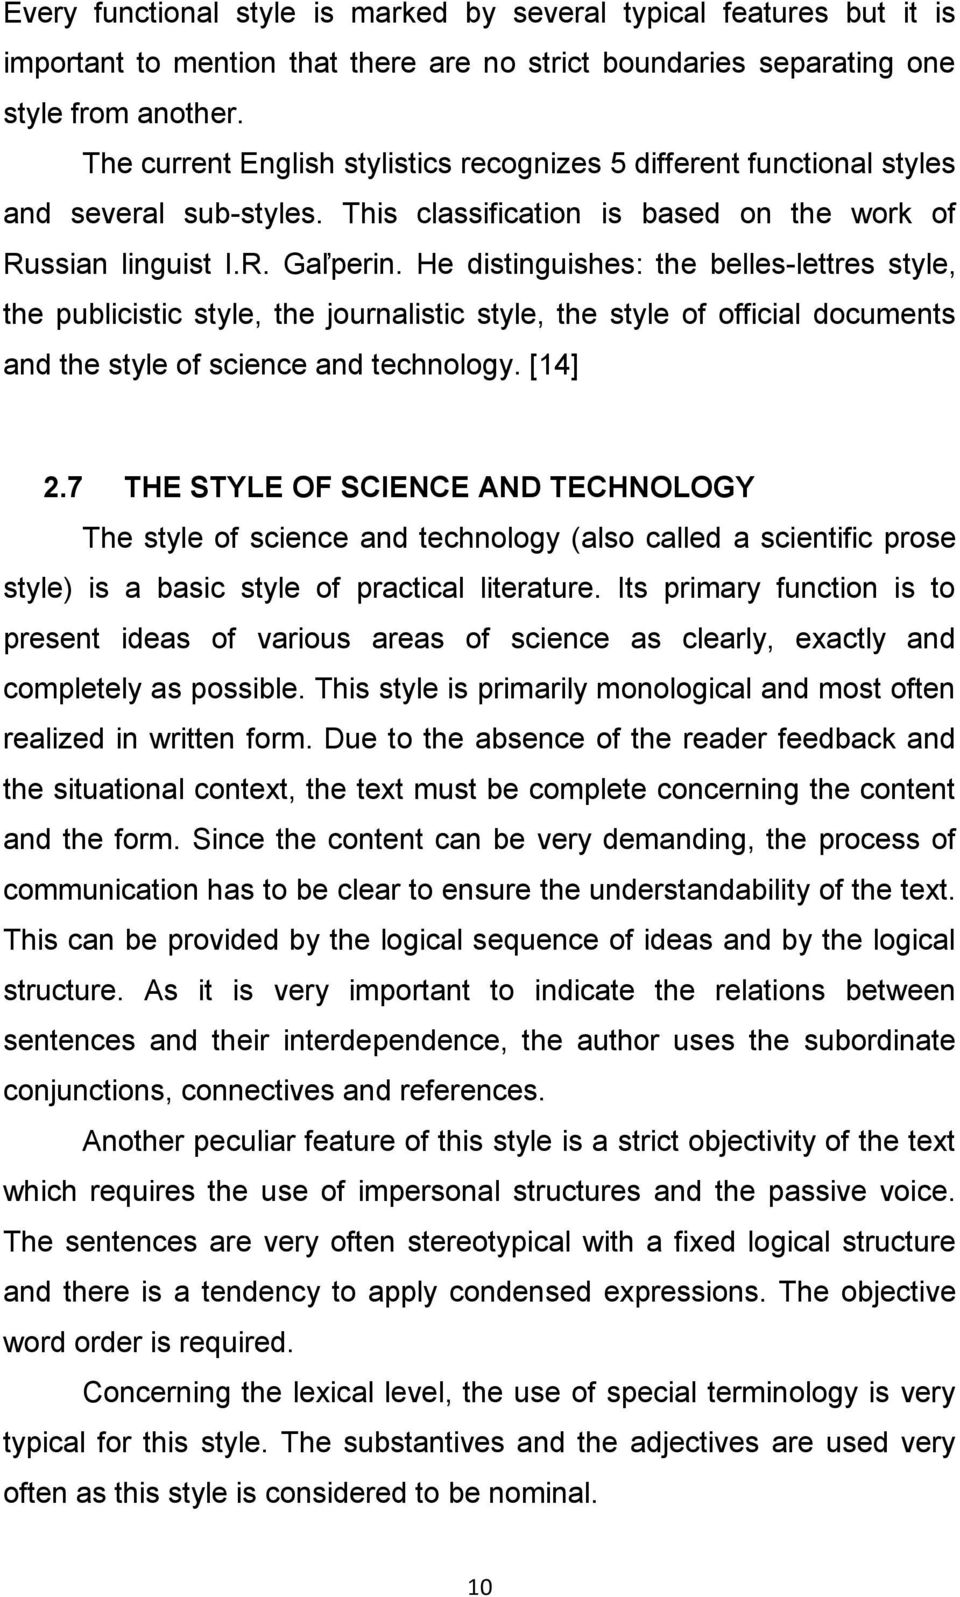 He distinguishes: the belles-lettres style, the publicistic style, the journalistic style, the style of official documents and the style of science and technology. [14] 2.